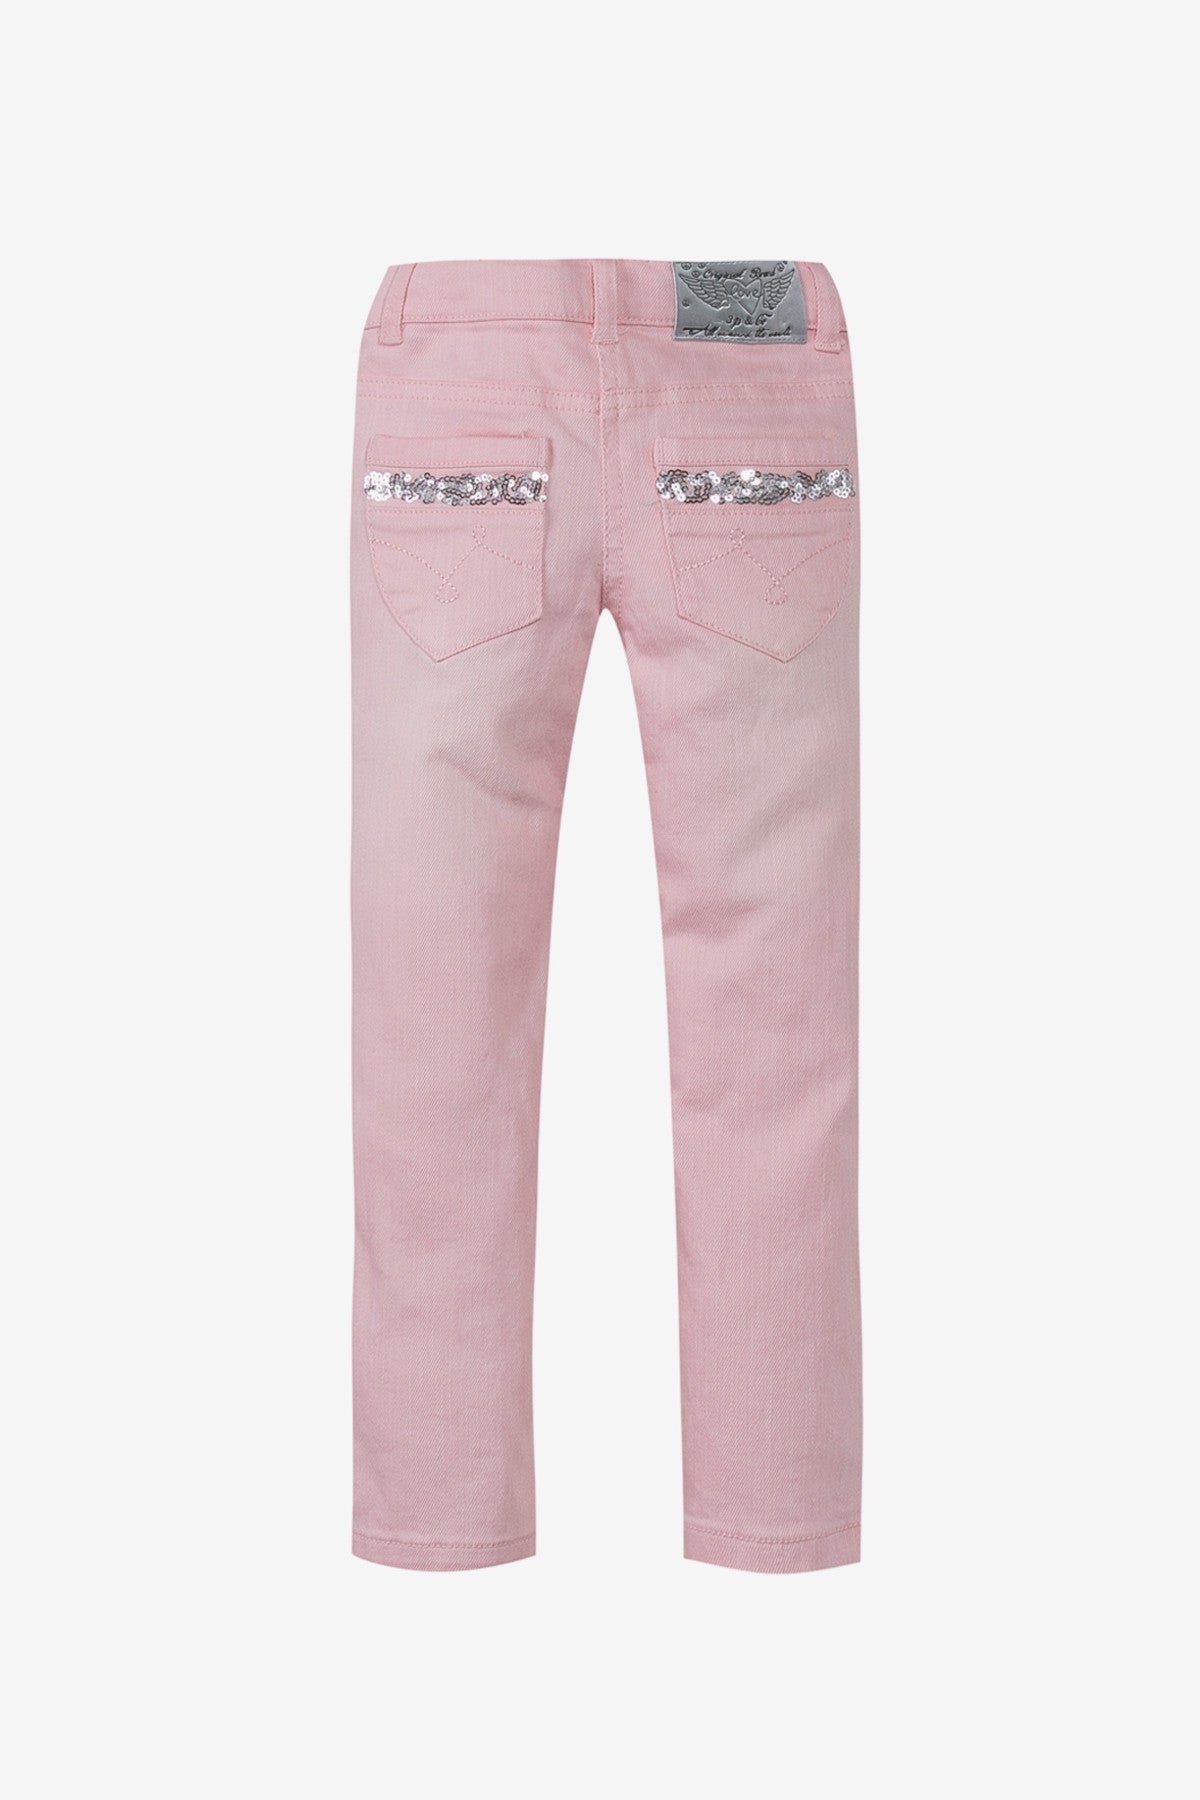 3pommes Pink Sequin Girls Jeans